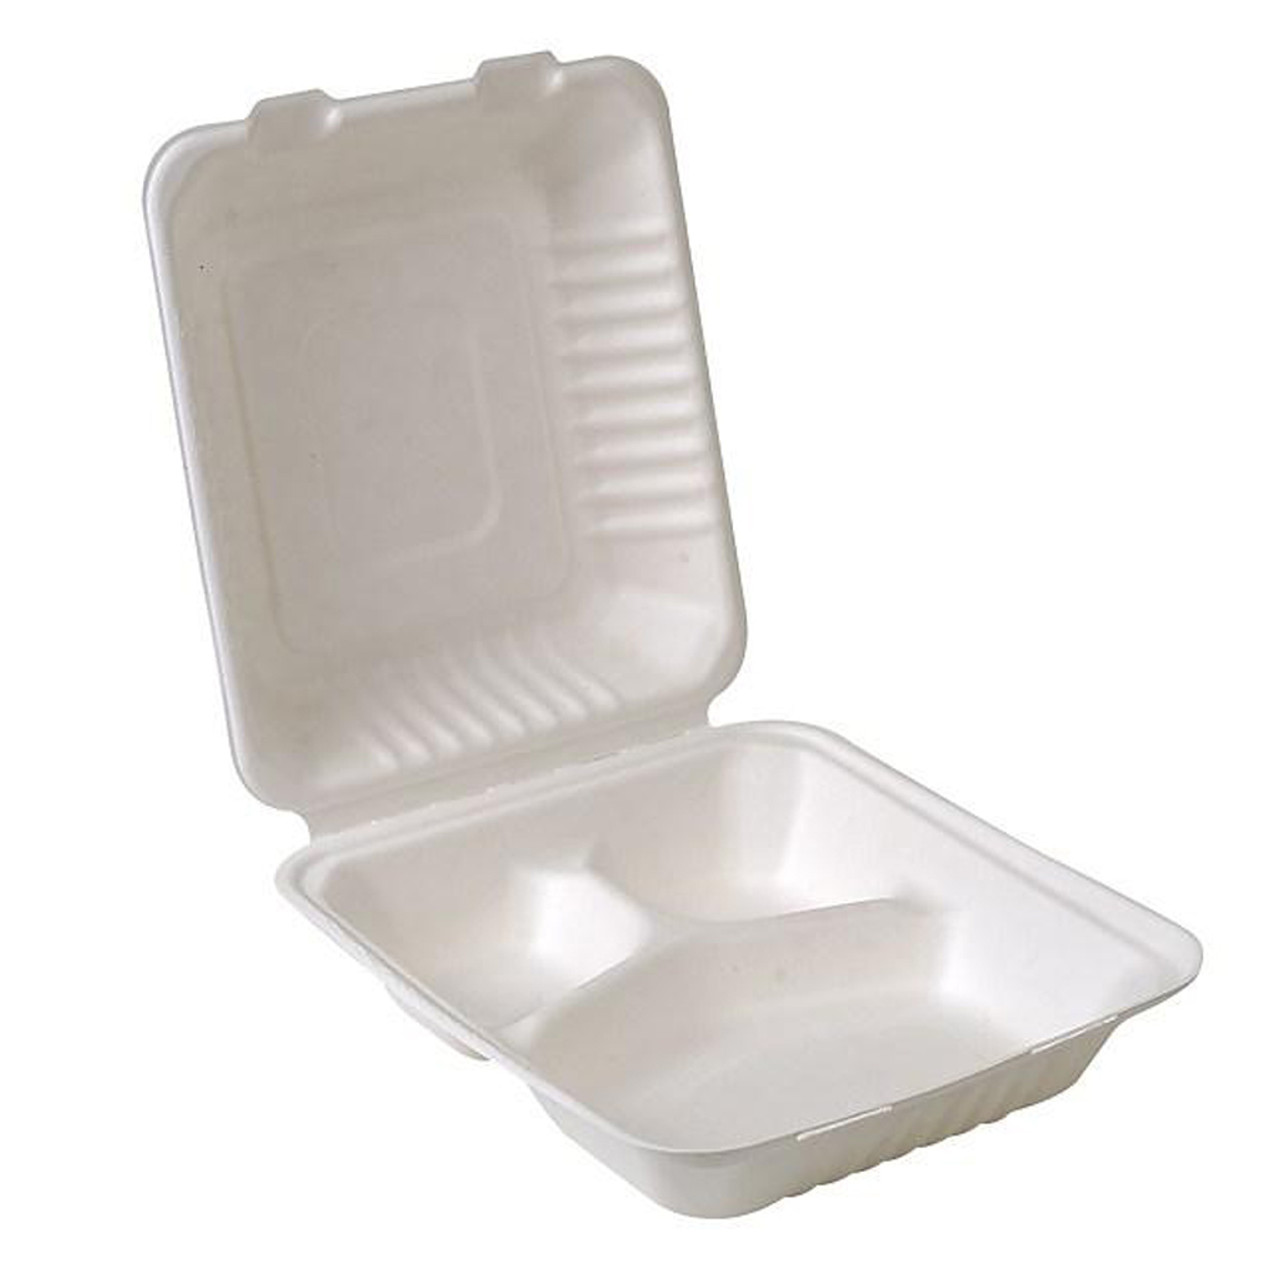 8x8x3 3-compartment sugarcane clamshell